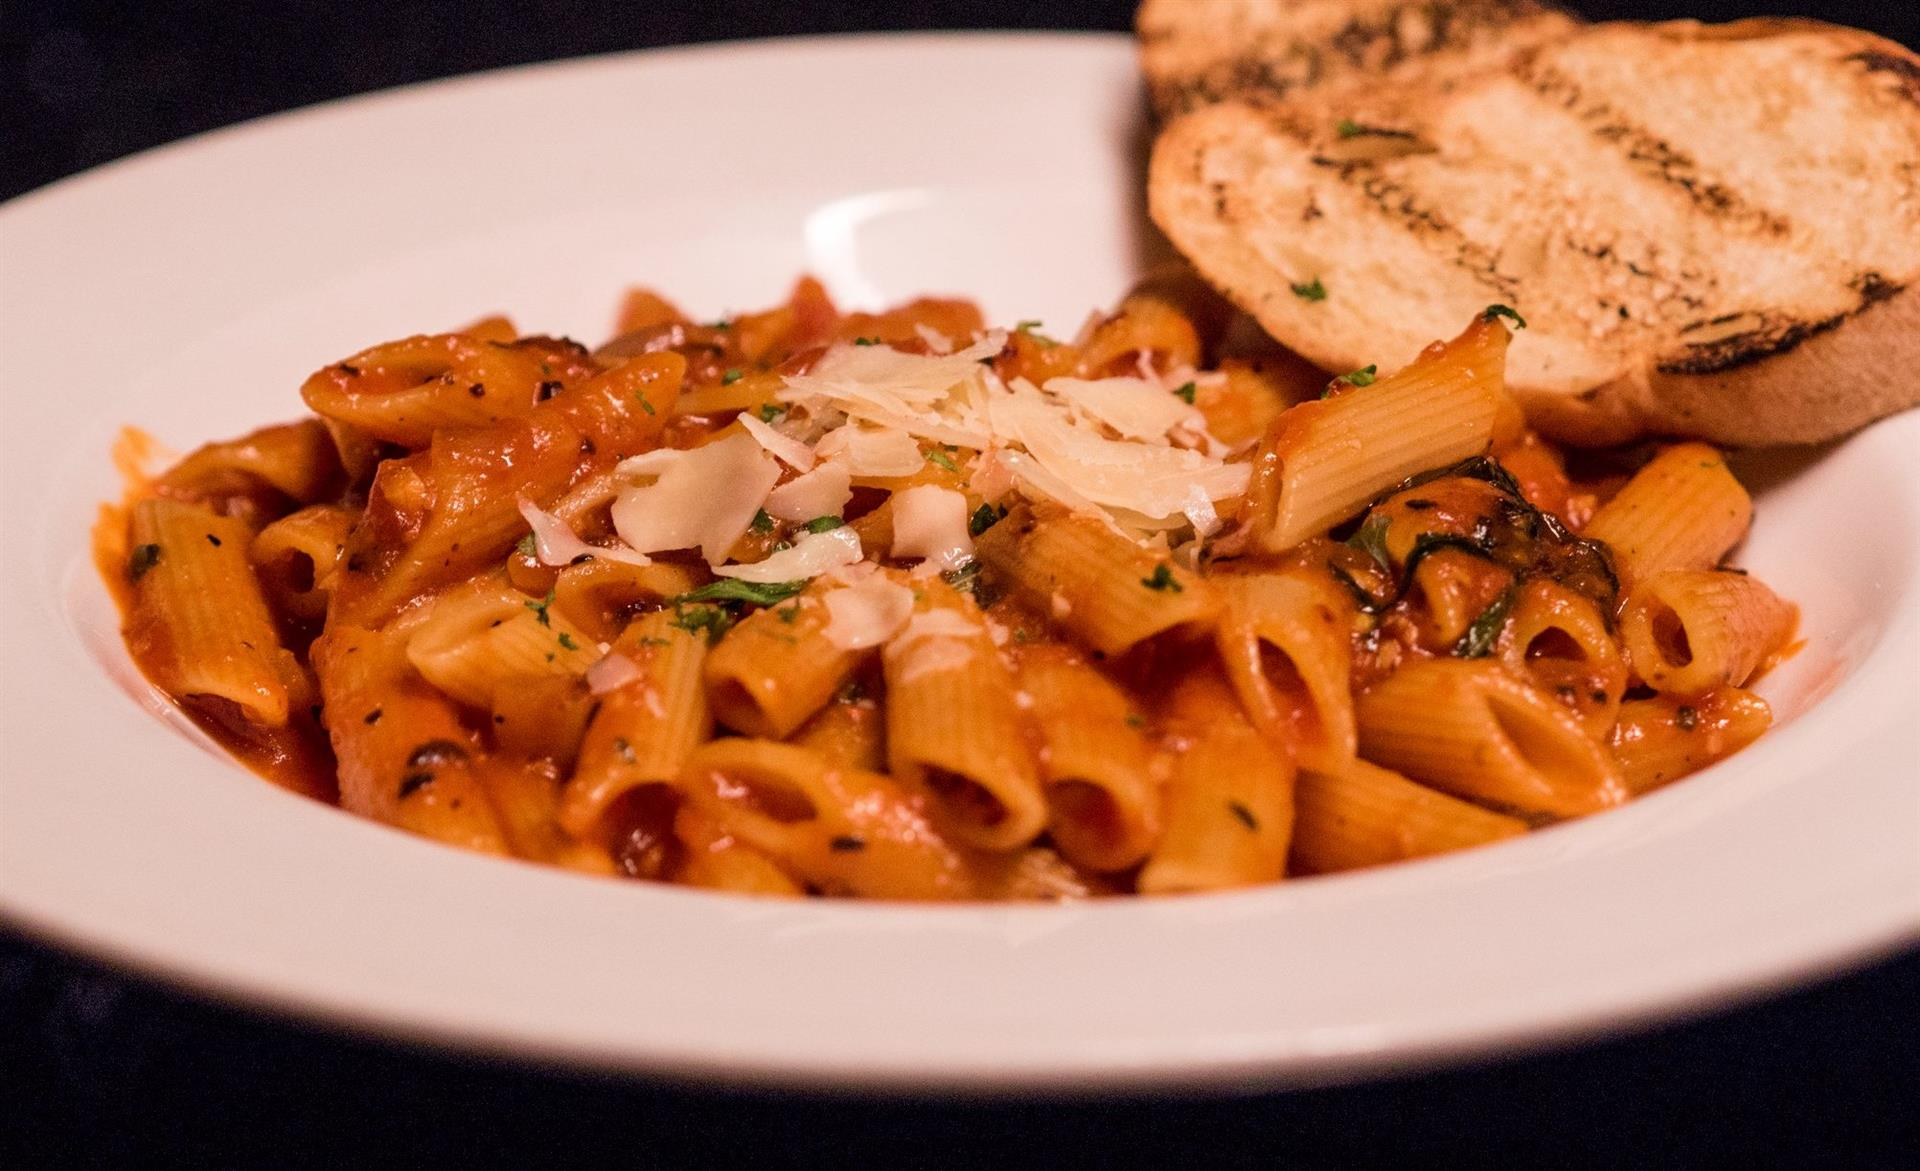 Penne pasta in tossed in tomato sauce and topped with fresh shaved parmesan cheese. Garlic bread on the side.